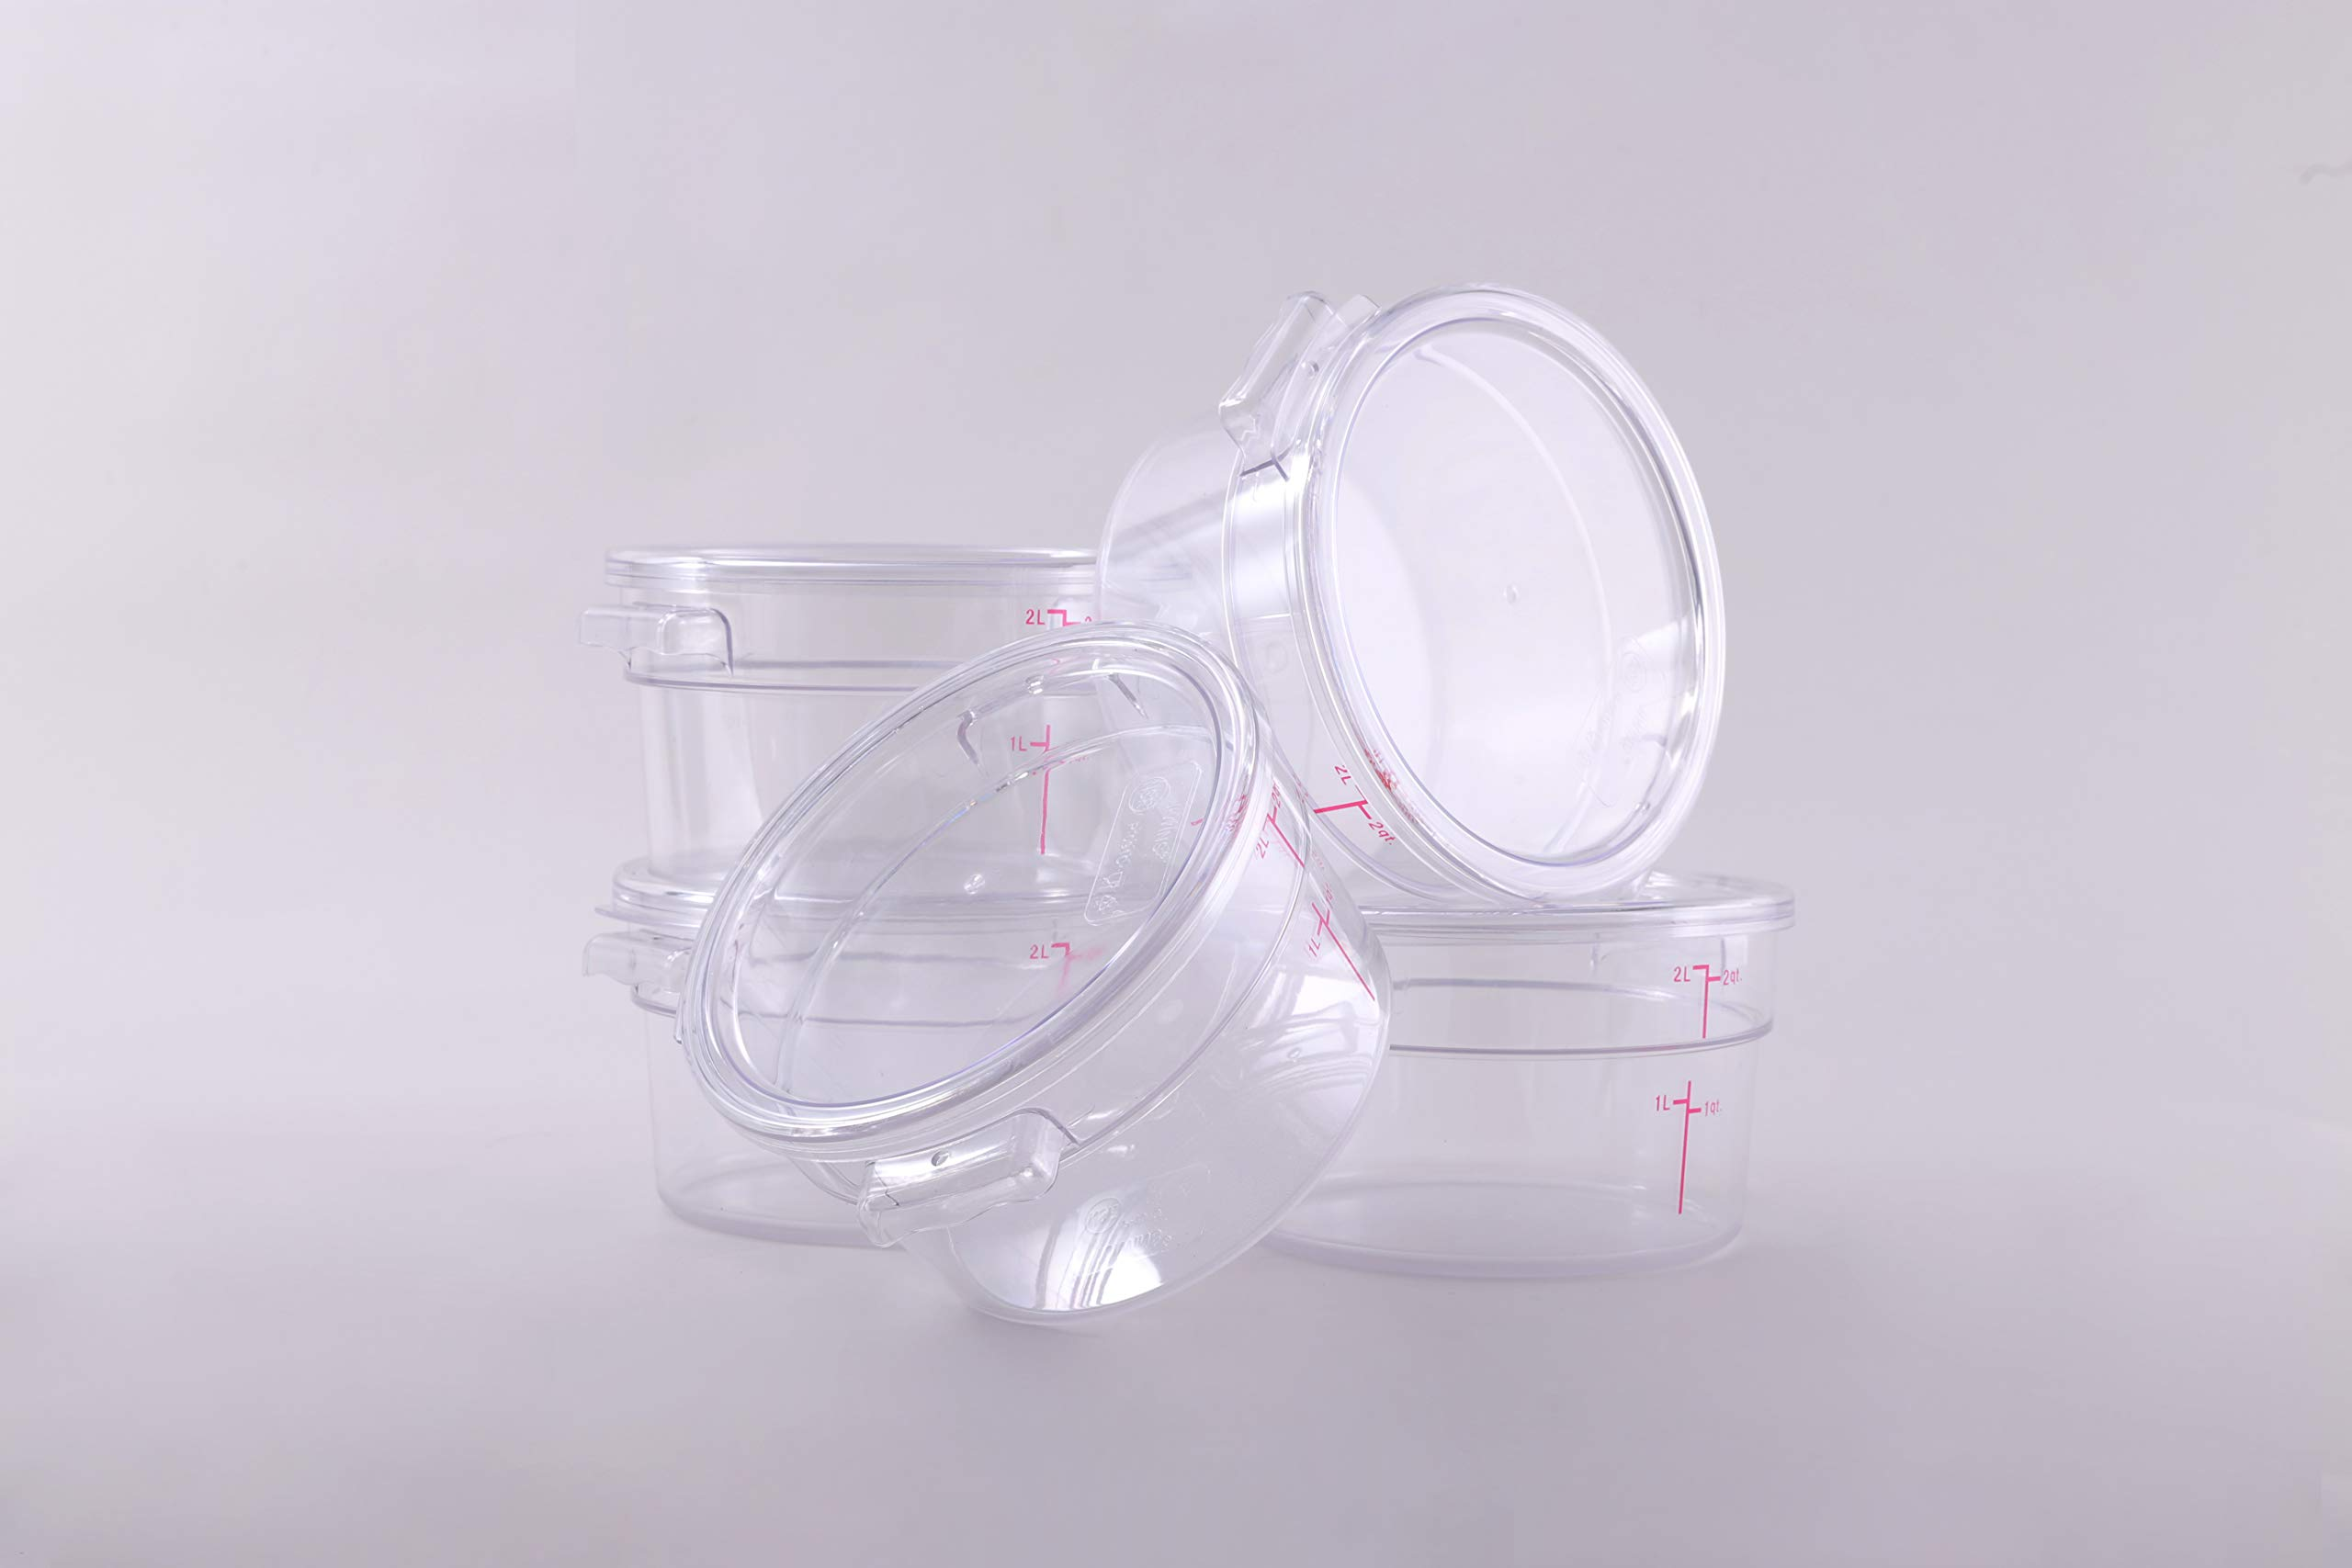 Hakka 2 Qt Commercial Grade Round Food Storage Containers with Lids,Polycarbonate,Clear - Case of 5 by HAKKA FOOD PROCESSING (Image #5)